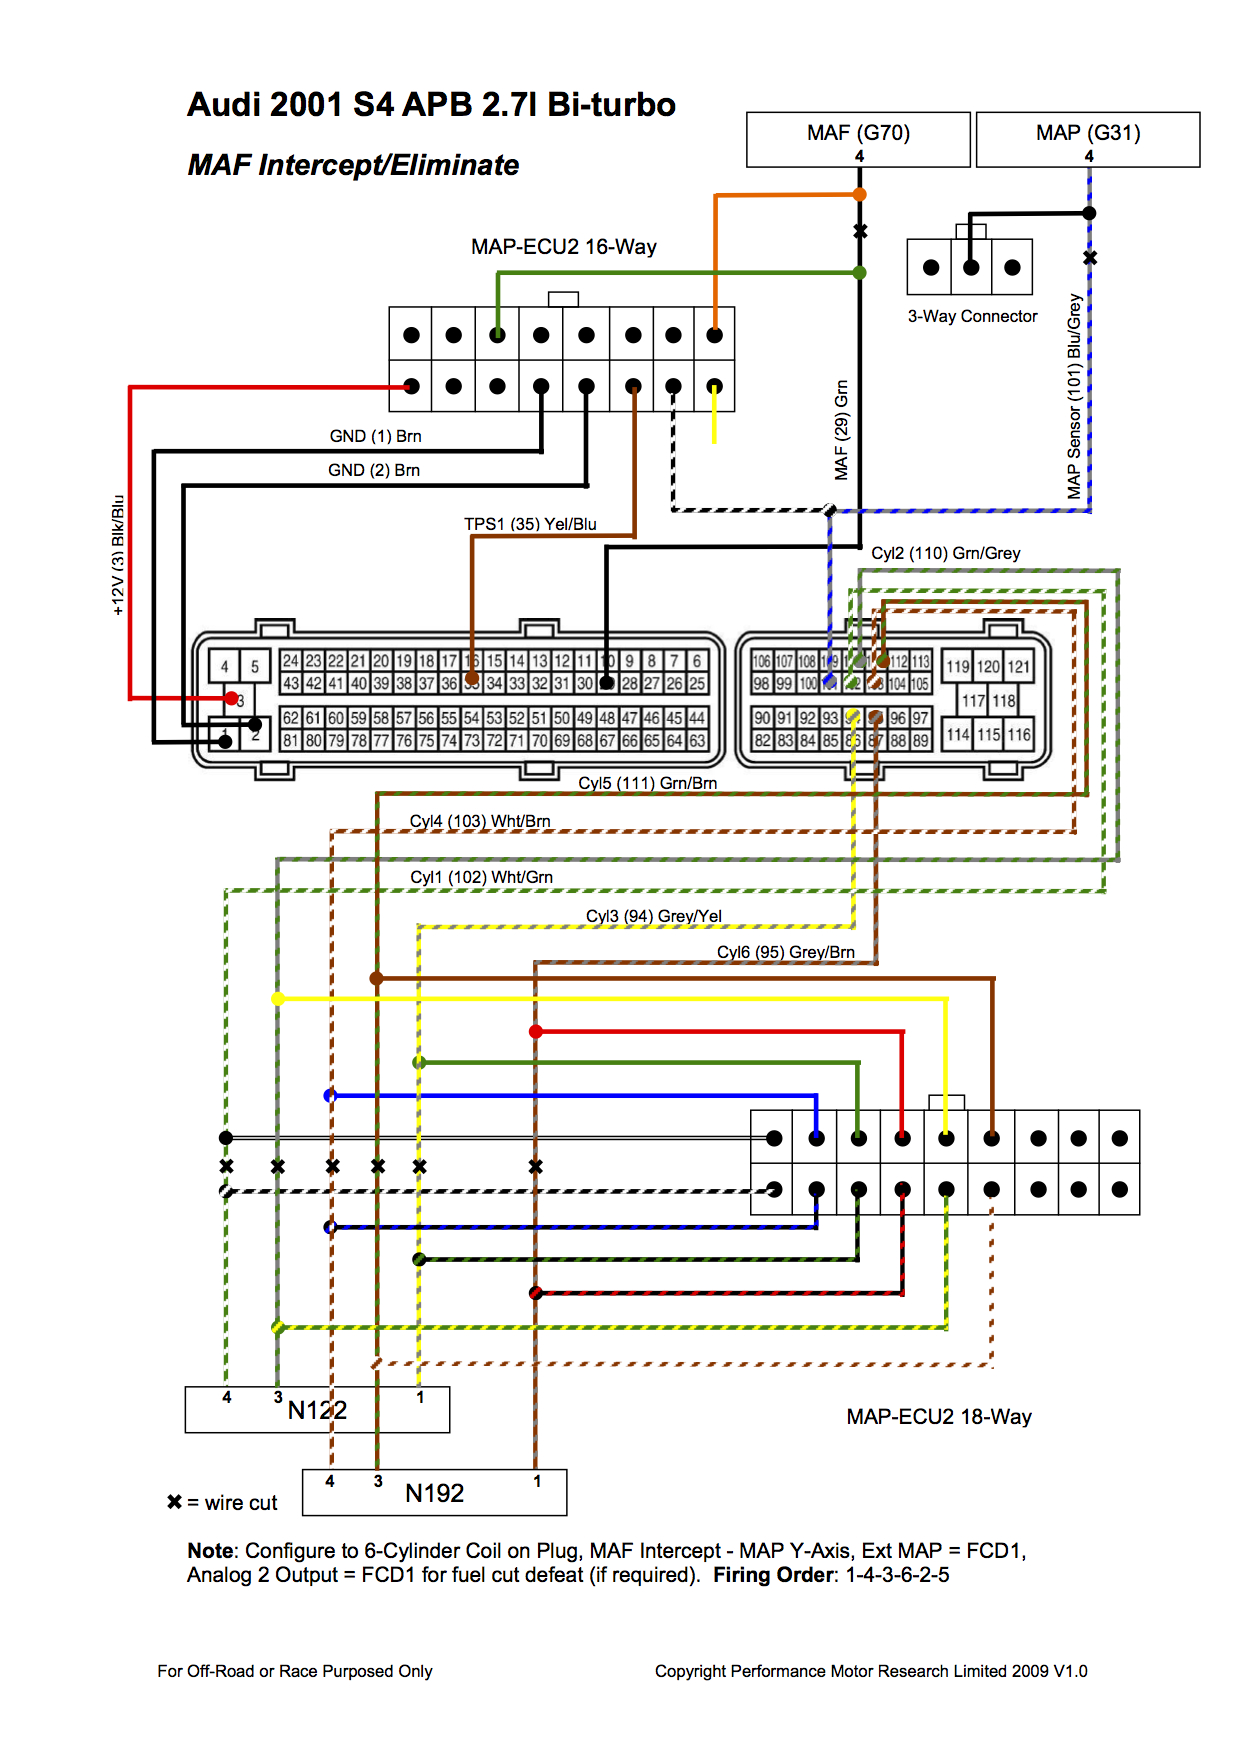 350z Ecu Pinout Diagram Excellent Electrical Wiring House For Nissan Wot Diagrams Schema Rh 26 Verena Hoegerl De 53 Standalone